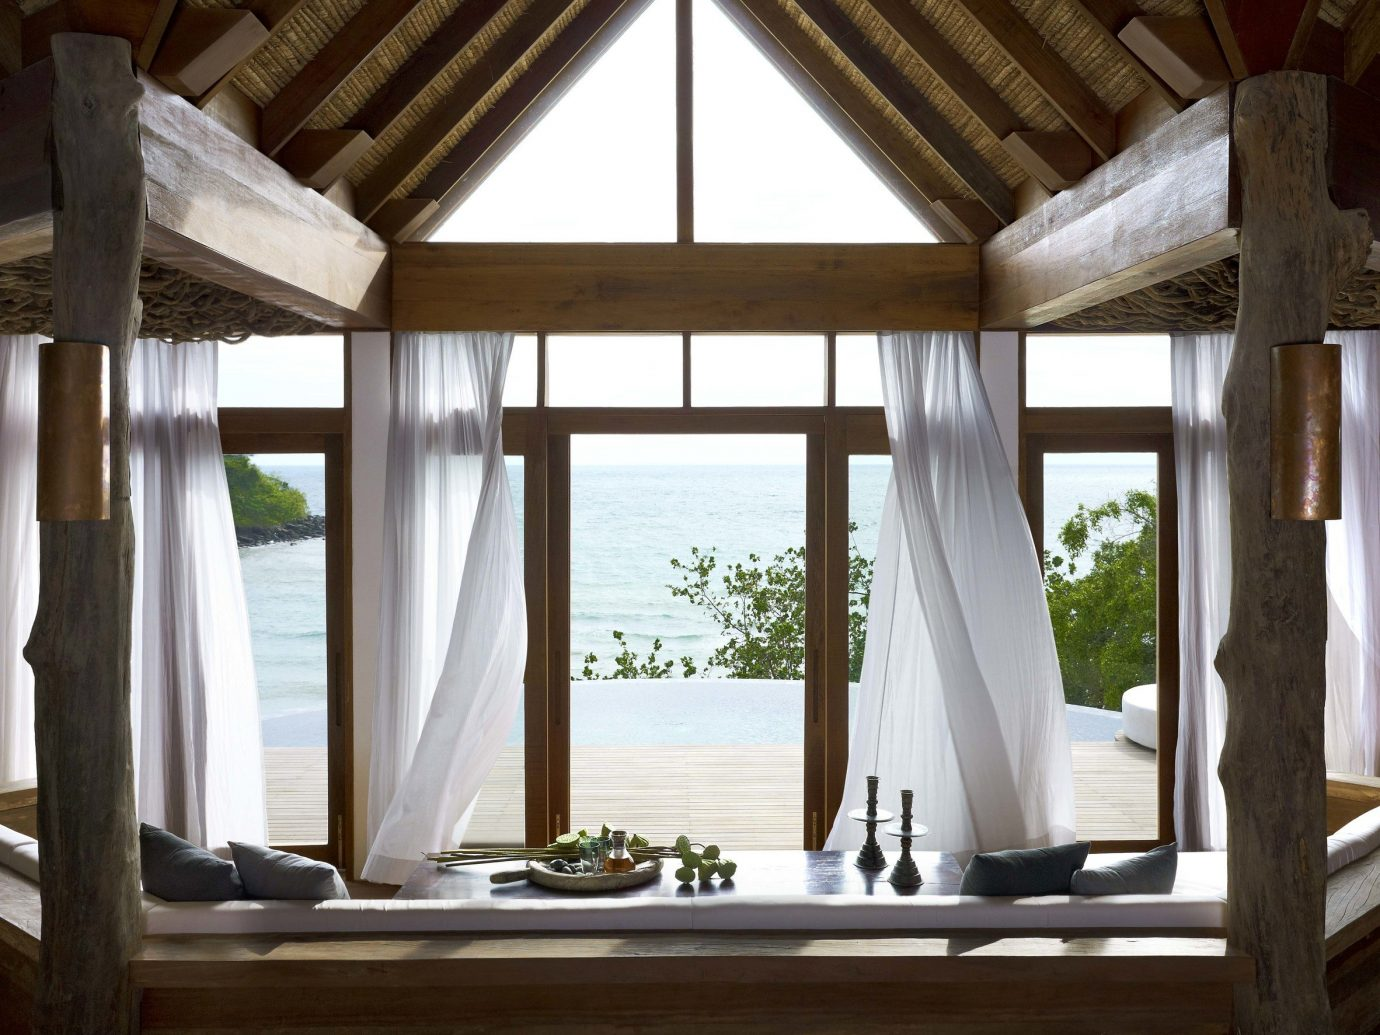 Hotels indoor room house building window porch wood home interior design estate ceiling daylighting lighting living room outdoor structure cottage window covering furniture